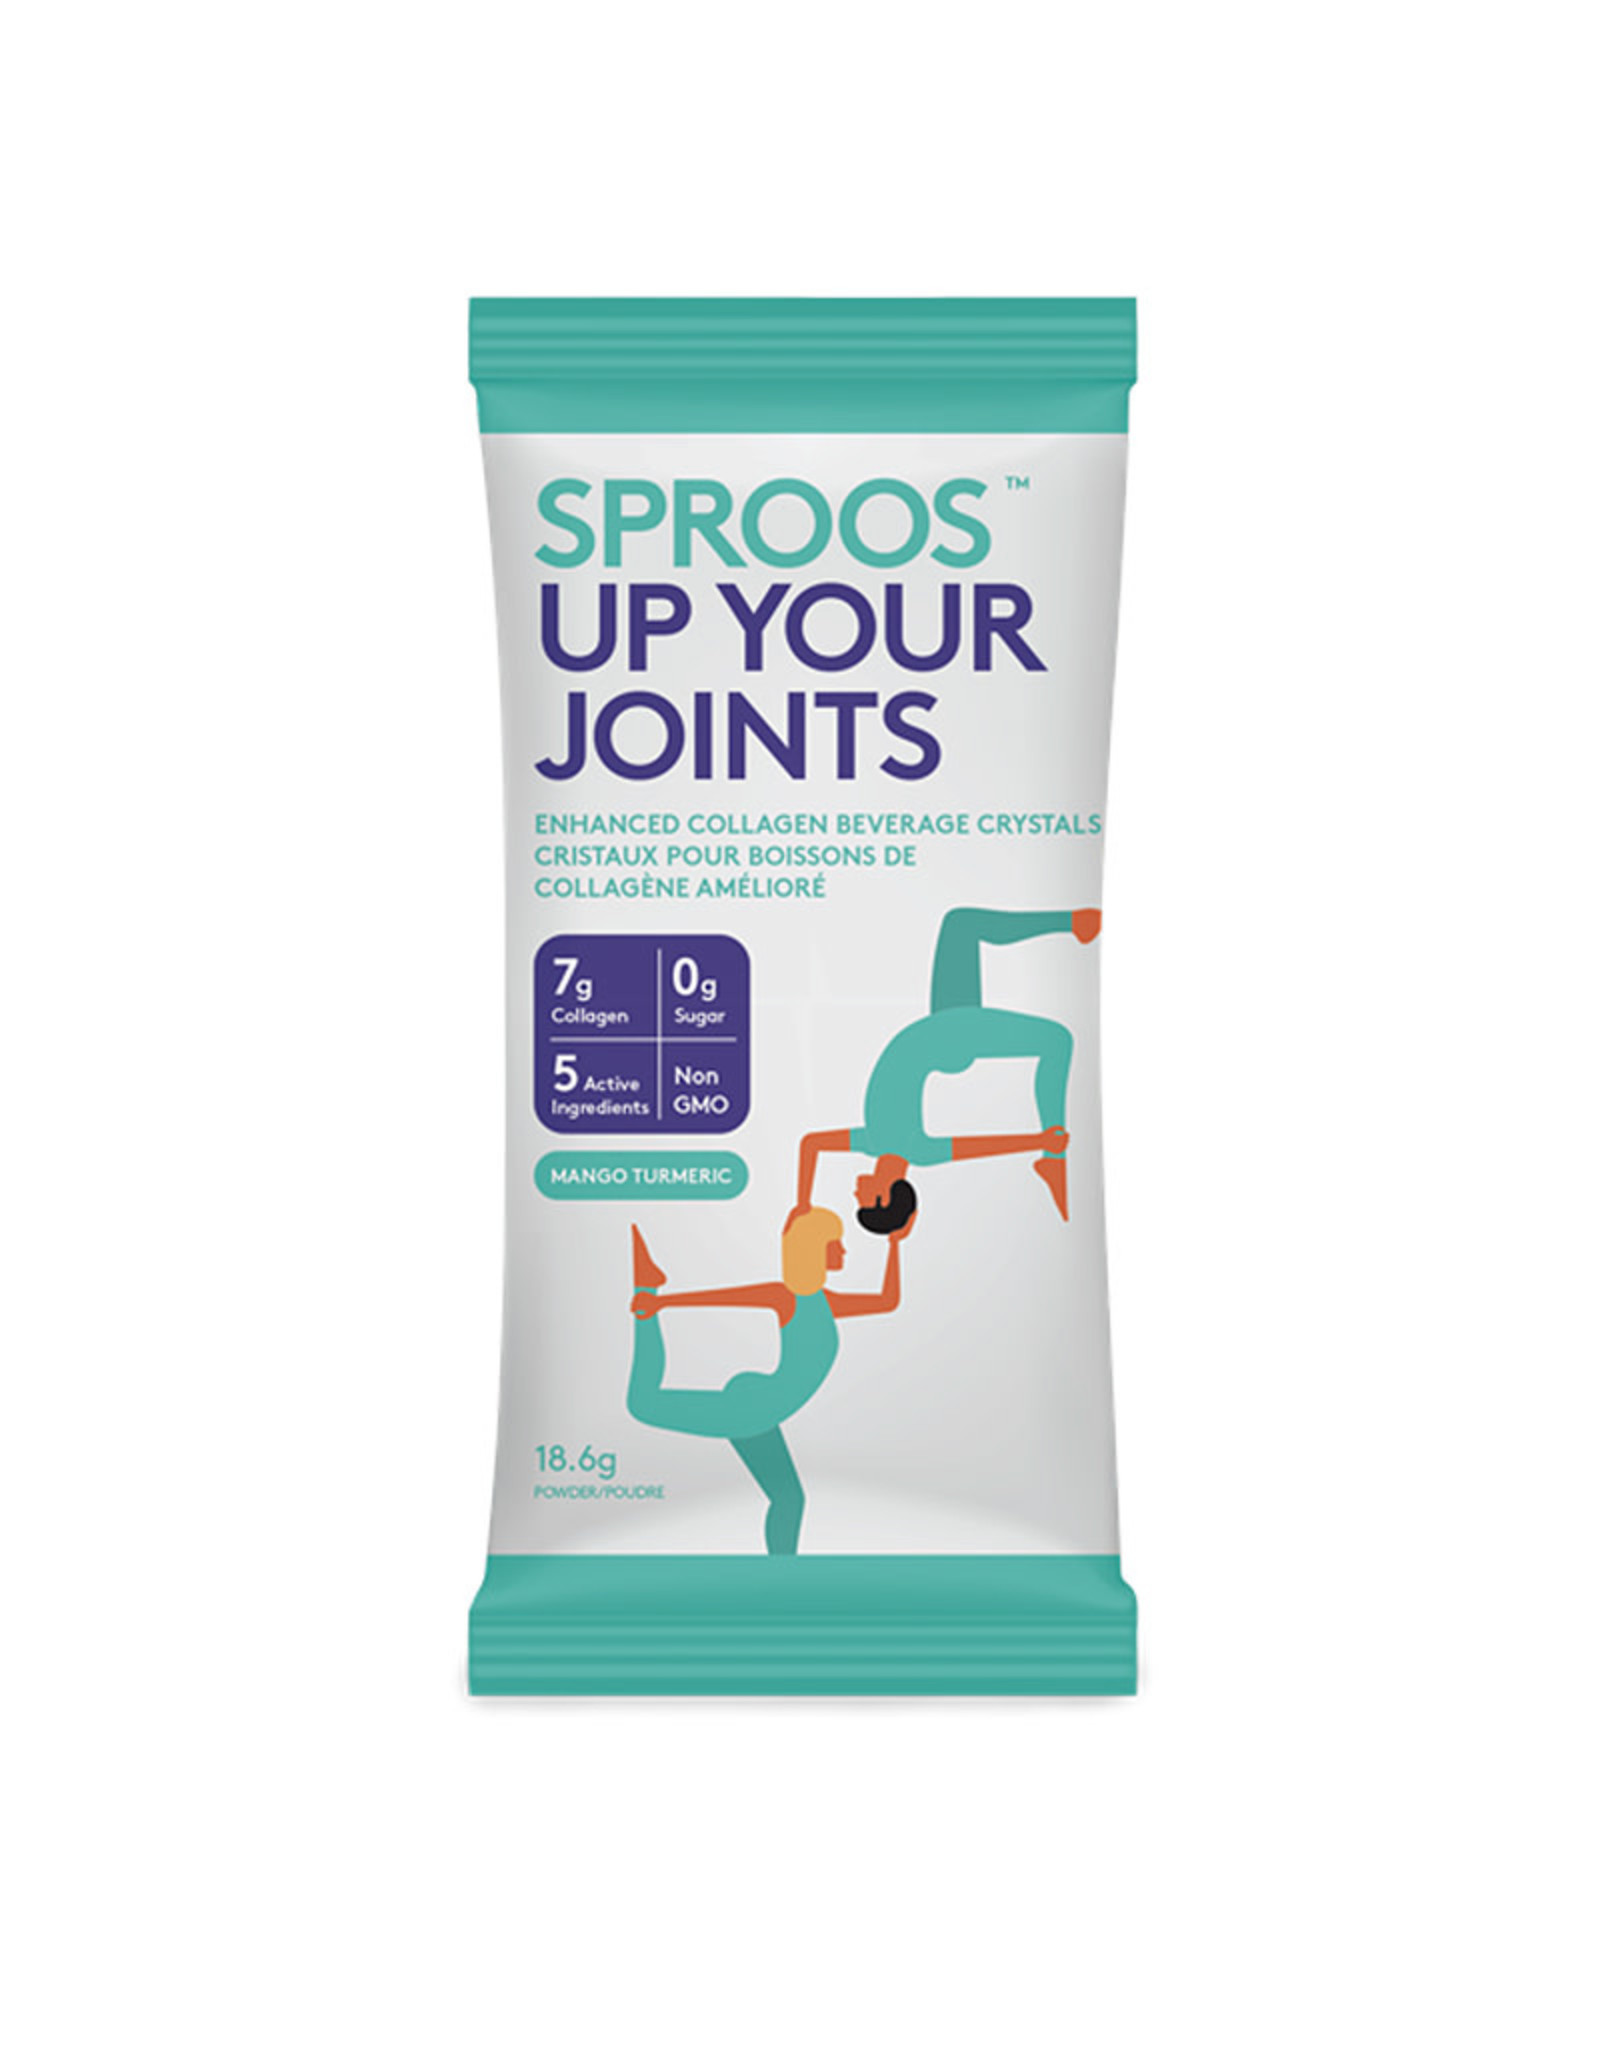 Sproos Sproos - Up Your Joints, Mango Turmeric (18.7g)